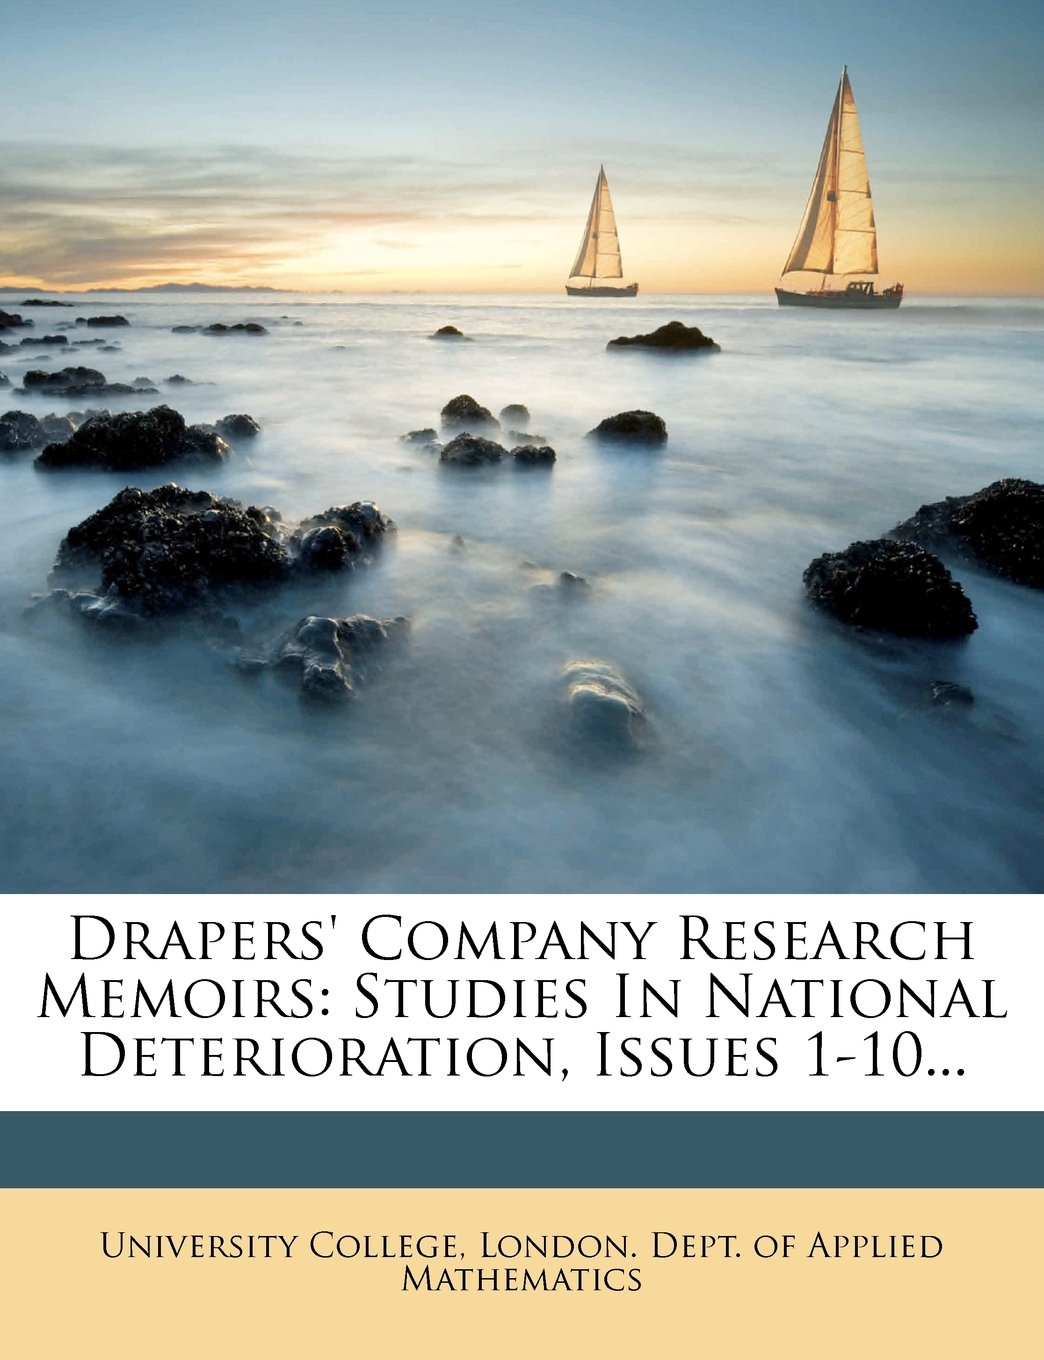 Drapers' Company Research Memoirs: Studies In National Deterioration, Issues 1-10... PDF